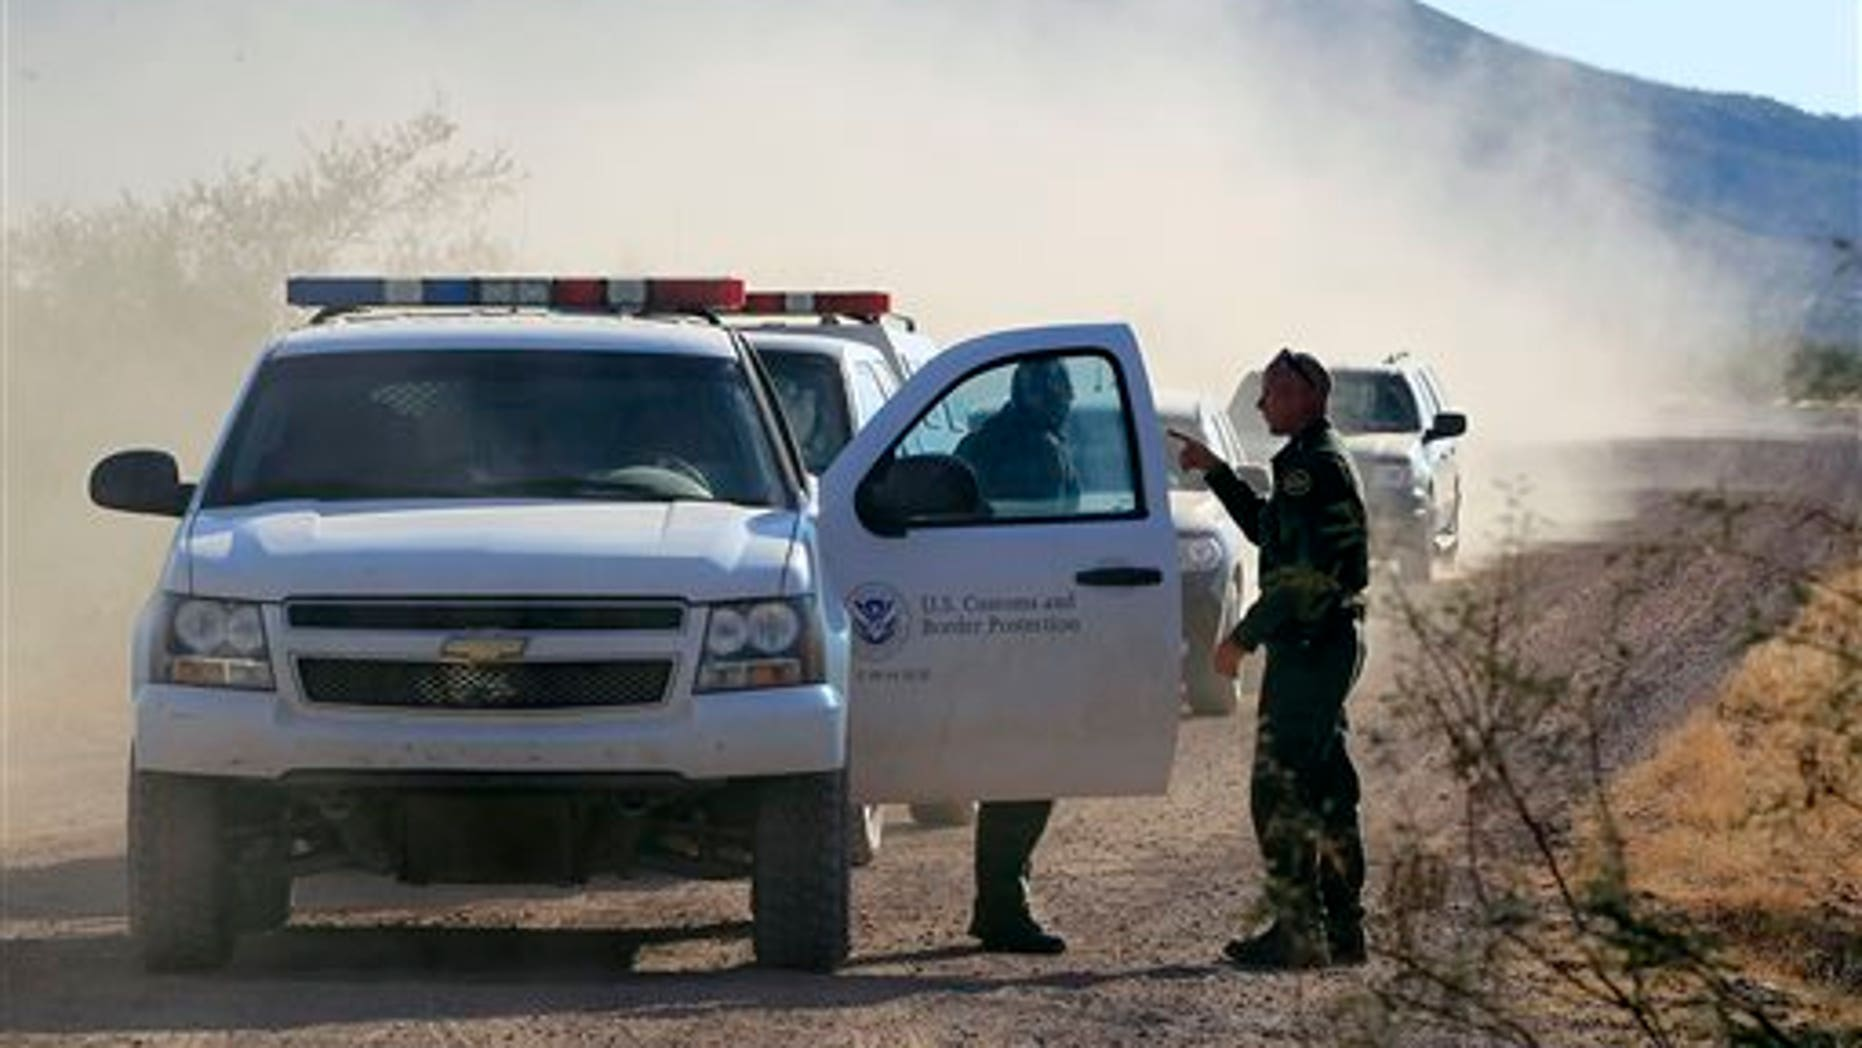 FILE - In this Oct. 2, 1012 file photo, several U.S. Customs and Border Protection officers and other law enforcement jurisdictions drive the roads near where a U.S. Border Patrol agent was shot and killed, and one other was shot and injured, where the shooting took place, near Bisbee, Ariz. Border Patrol agents in southern Arizona are subjecting U.S. citizens to illegal searches, detentions and excessive force in many cases miles from the state's border with Mexico, the American Civil Liberties Union wrote in a complaint Wednesday, Oct. 9, 2013. (AP Photo/Ross D. Franklin, file)